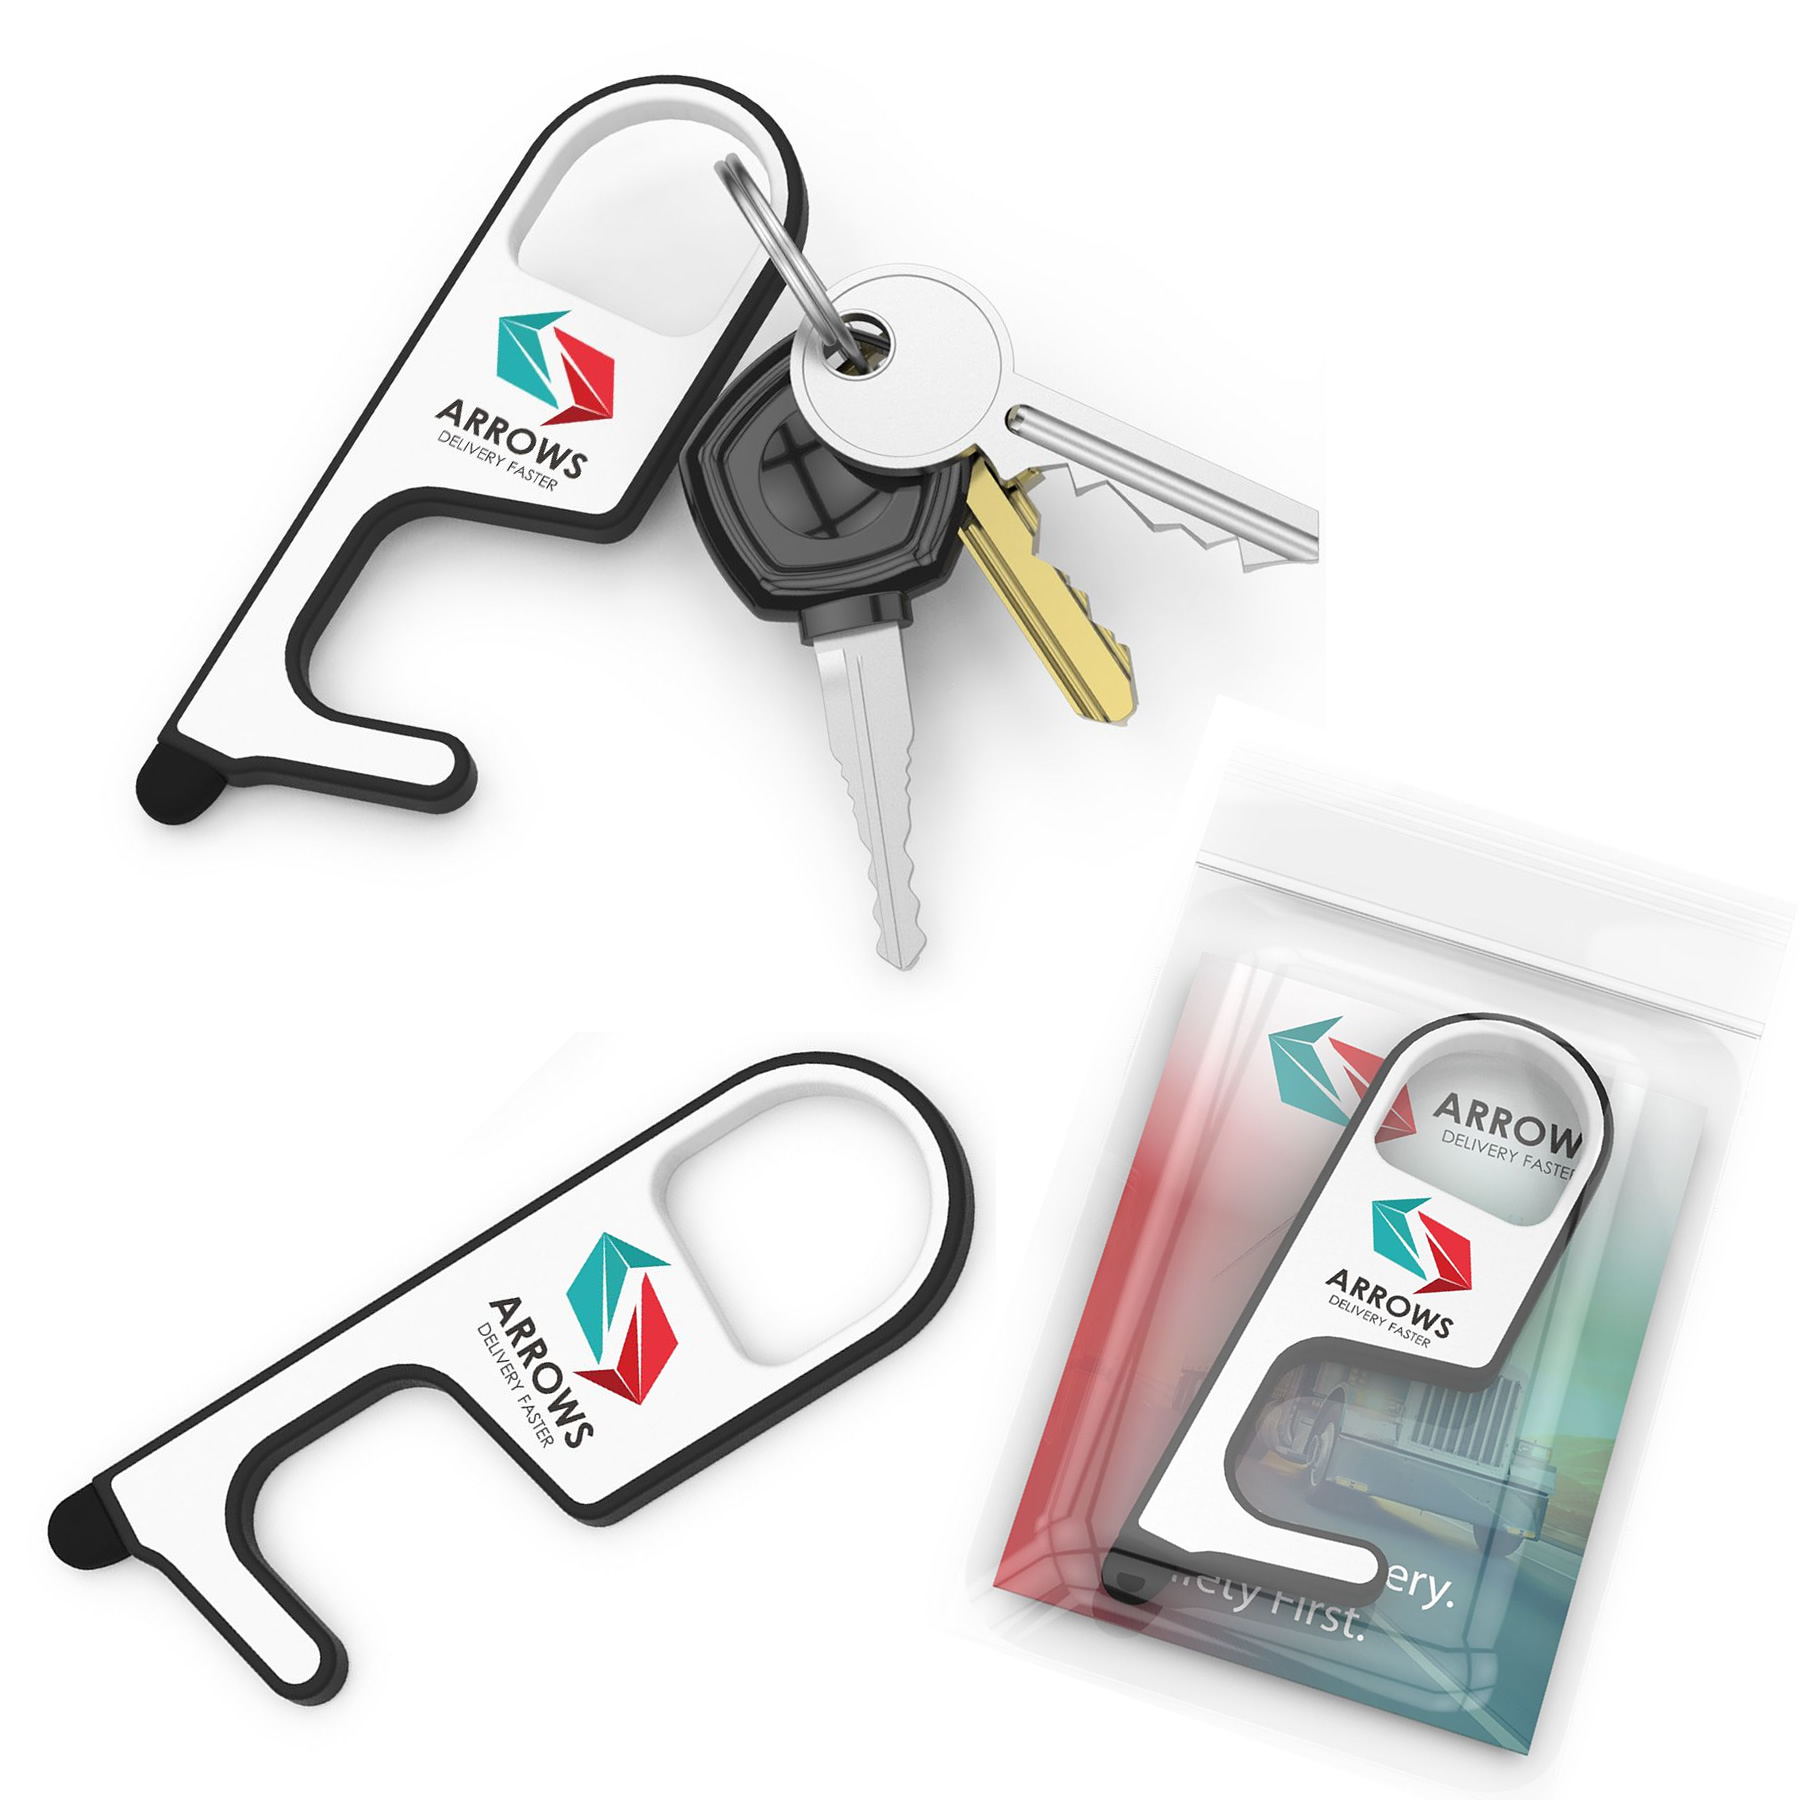 Promotional No Touch Tool Key Chain